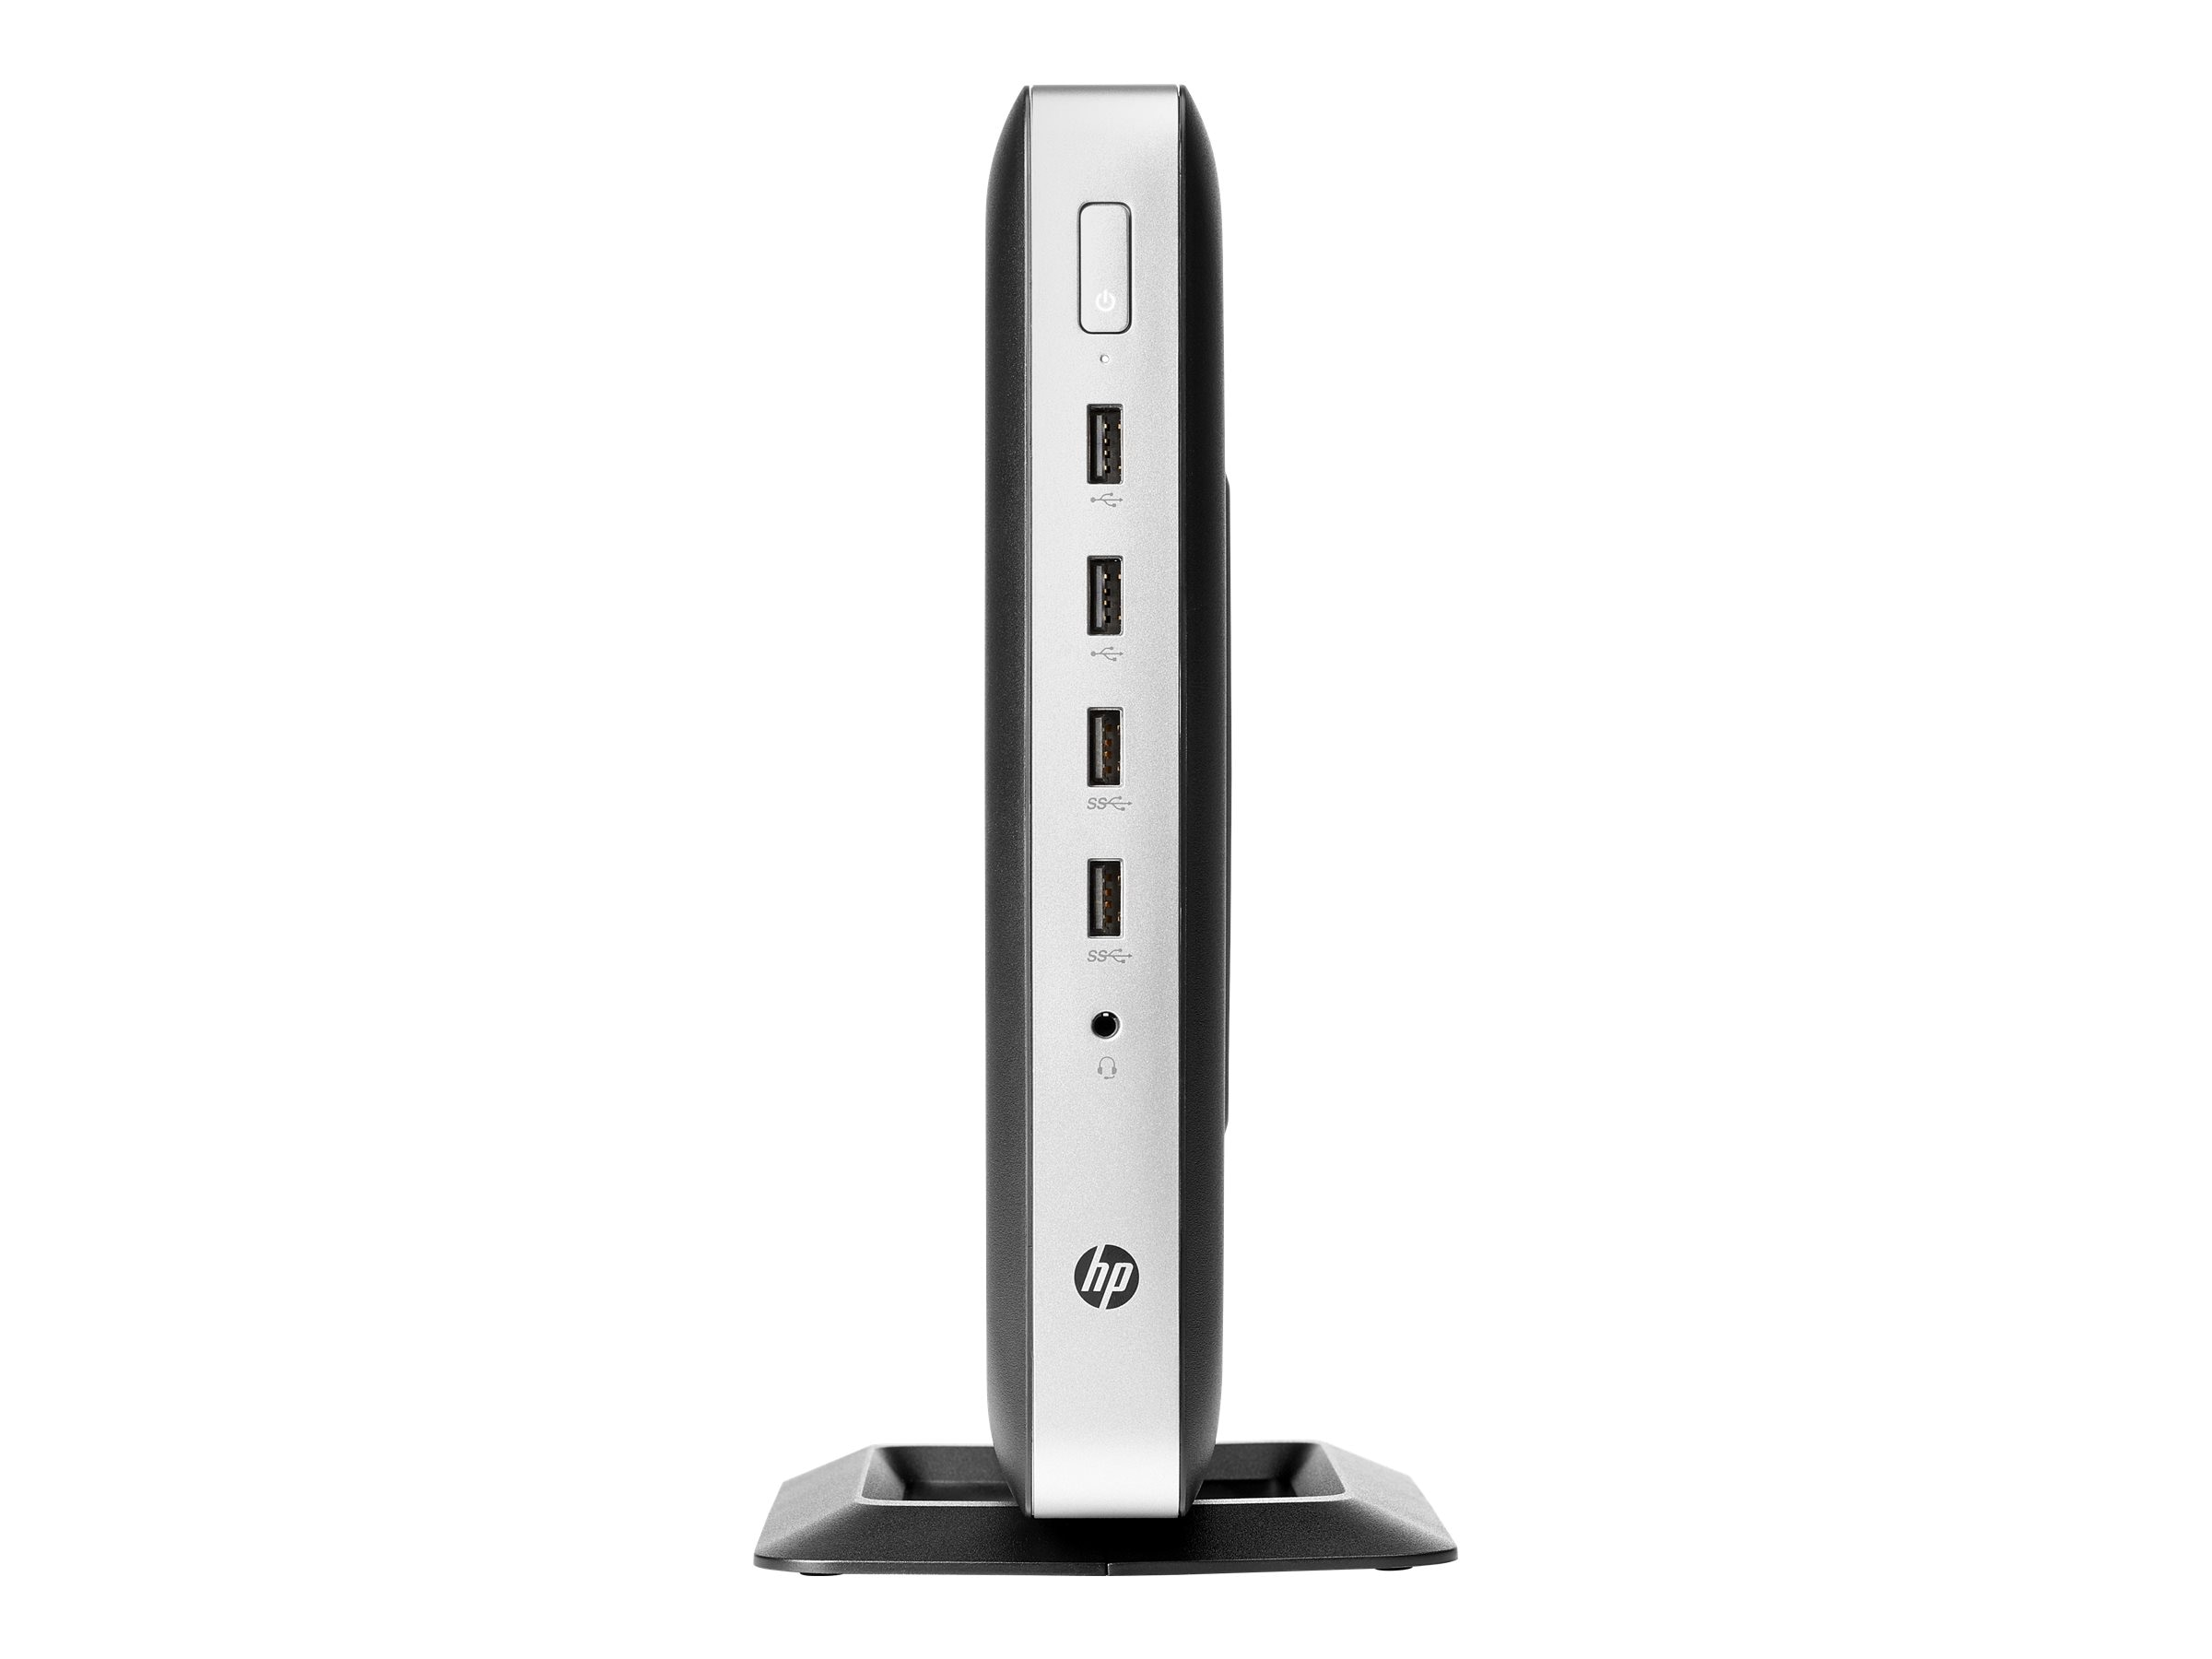 HP t630 Thin Client AMD GX-420GI 2.0GHz 8GB 128GB Flash R6E GbE VGA W10 IoT, W5Z05UA#ABA